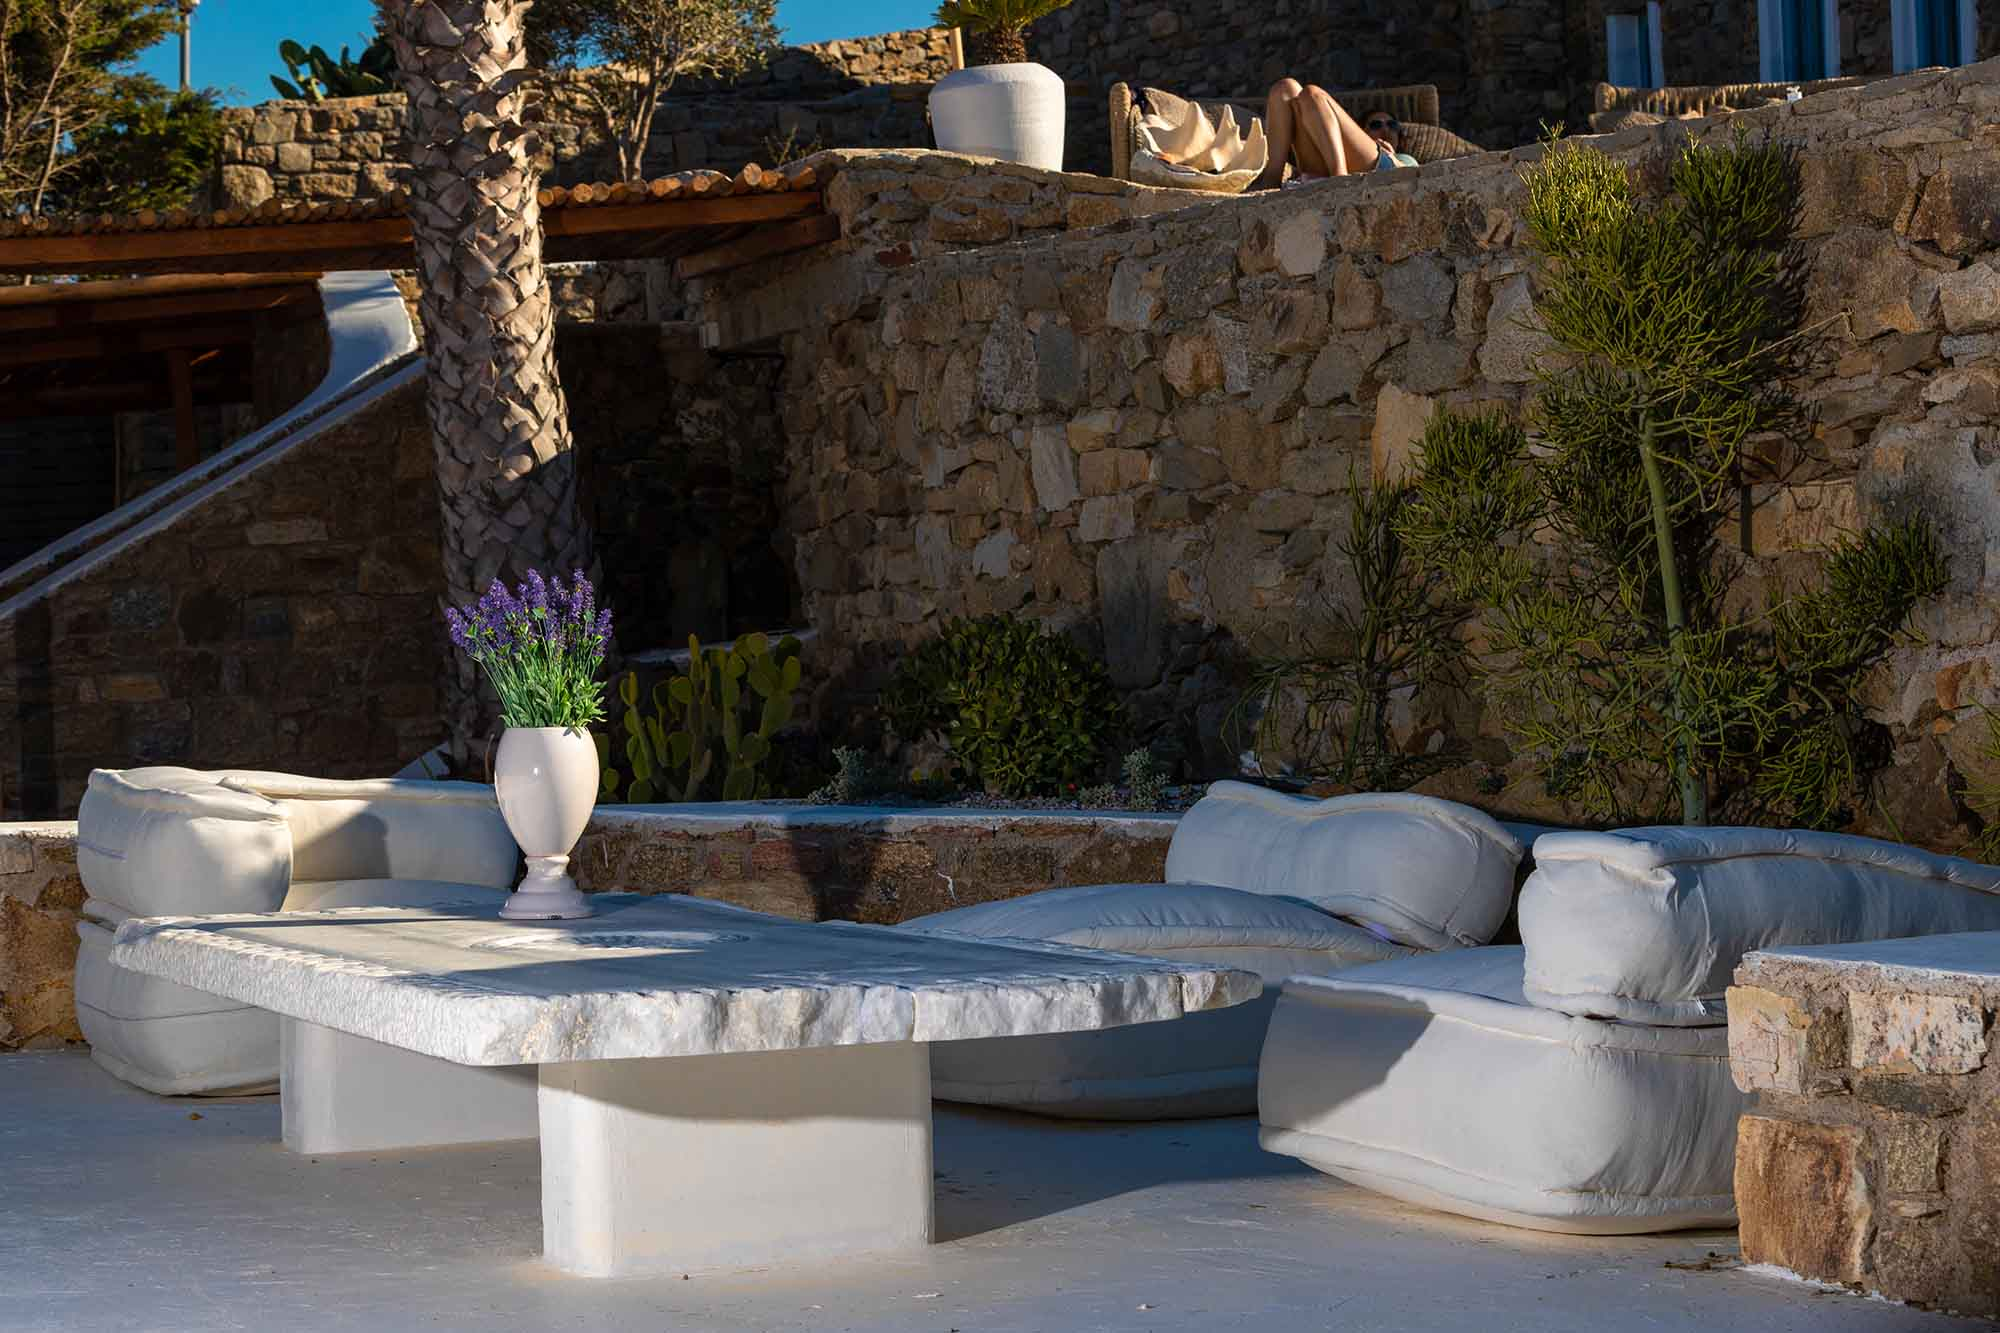 RENT A LUXURIOUS VILLA BY THE SEA IN MYKONOS - VILLA KARKOS - outdoor